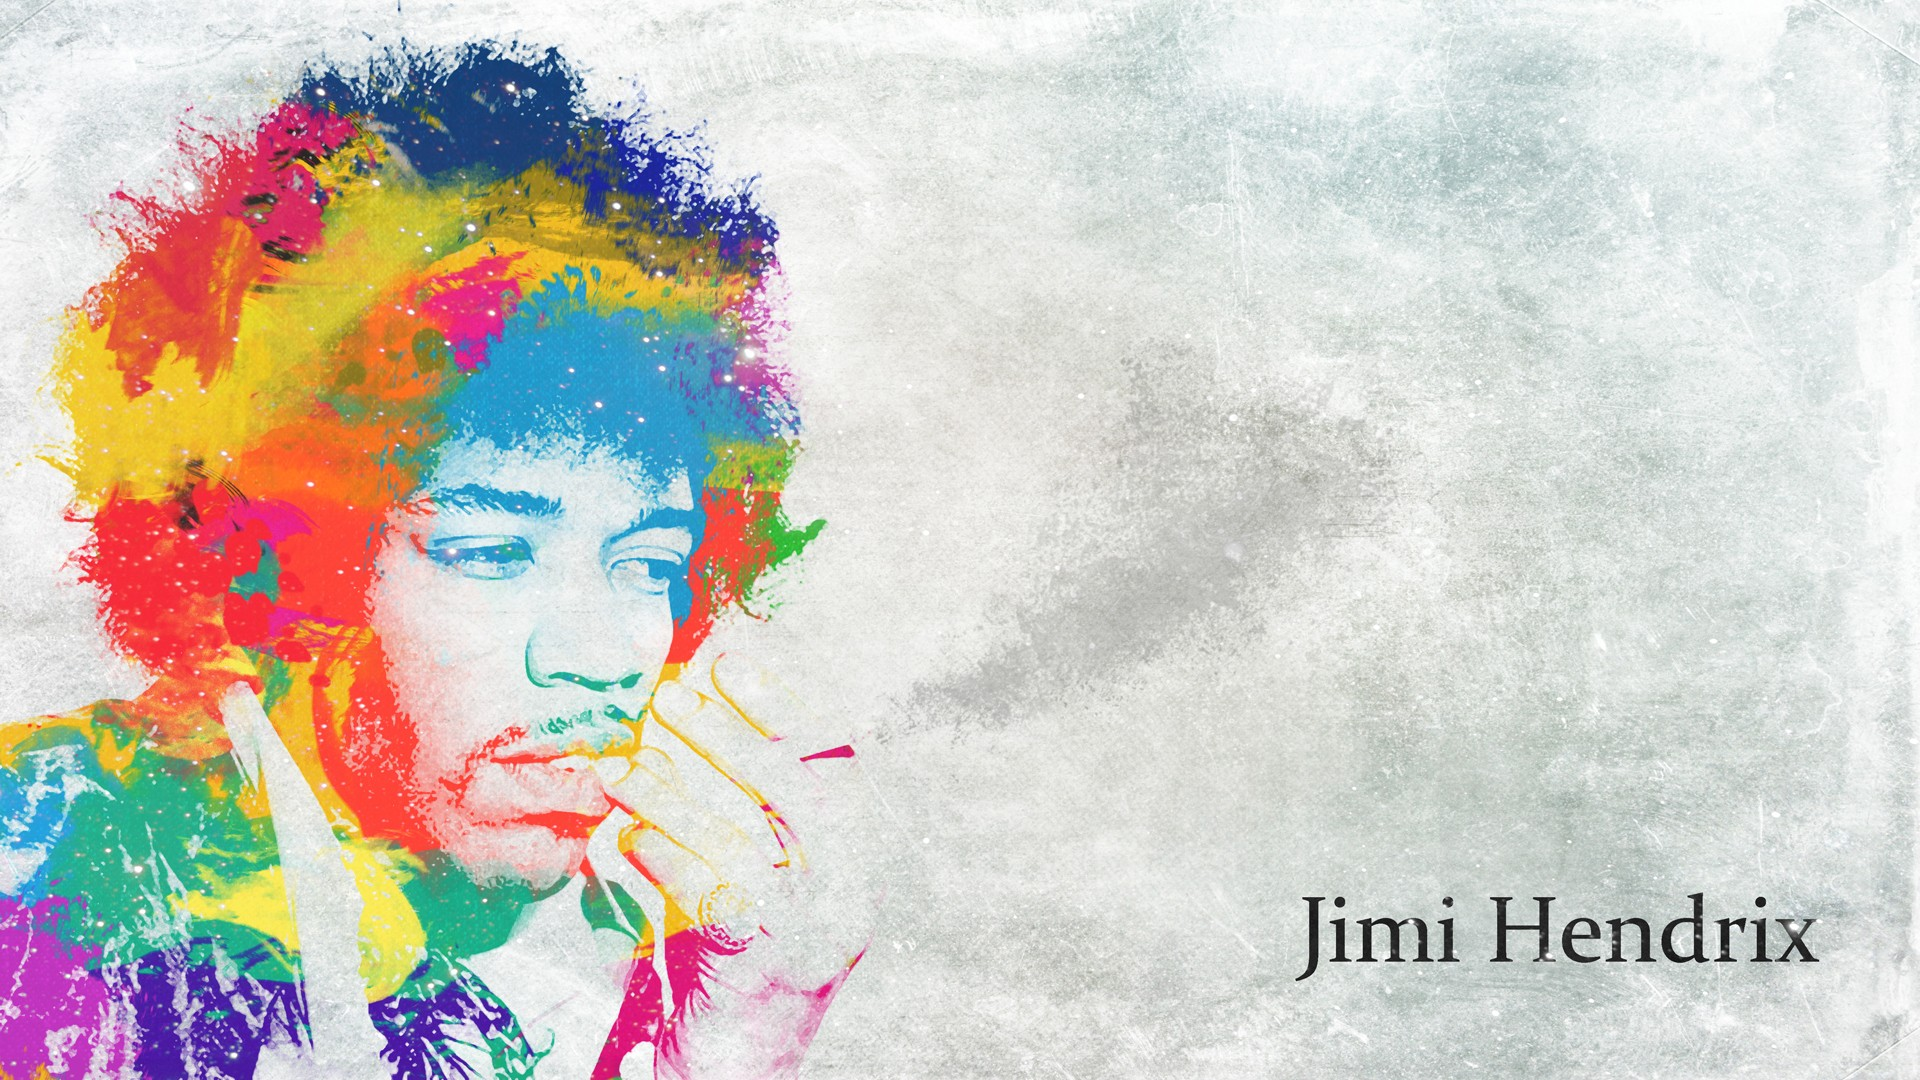 Jimi hendrix wallpapers high resolution and quality download - Jimi hendrix wallpaper psychedelic ...